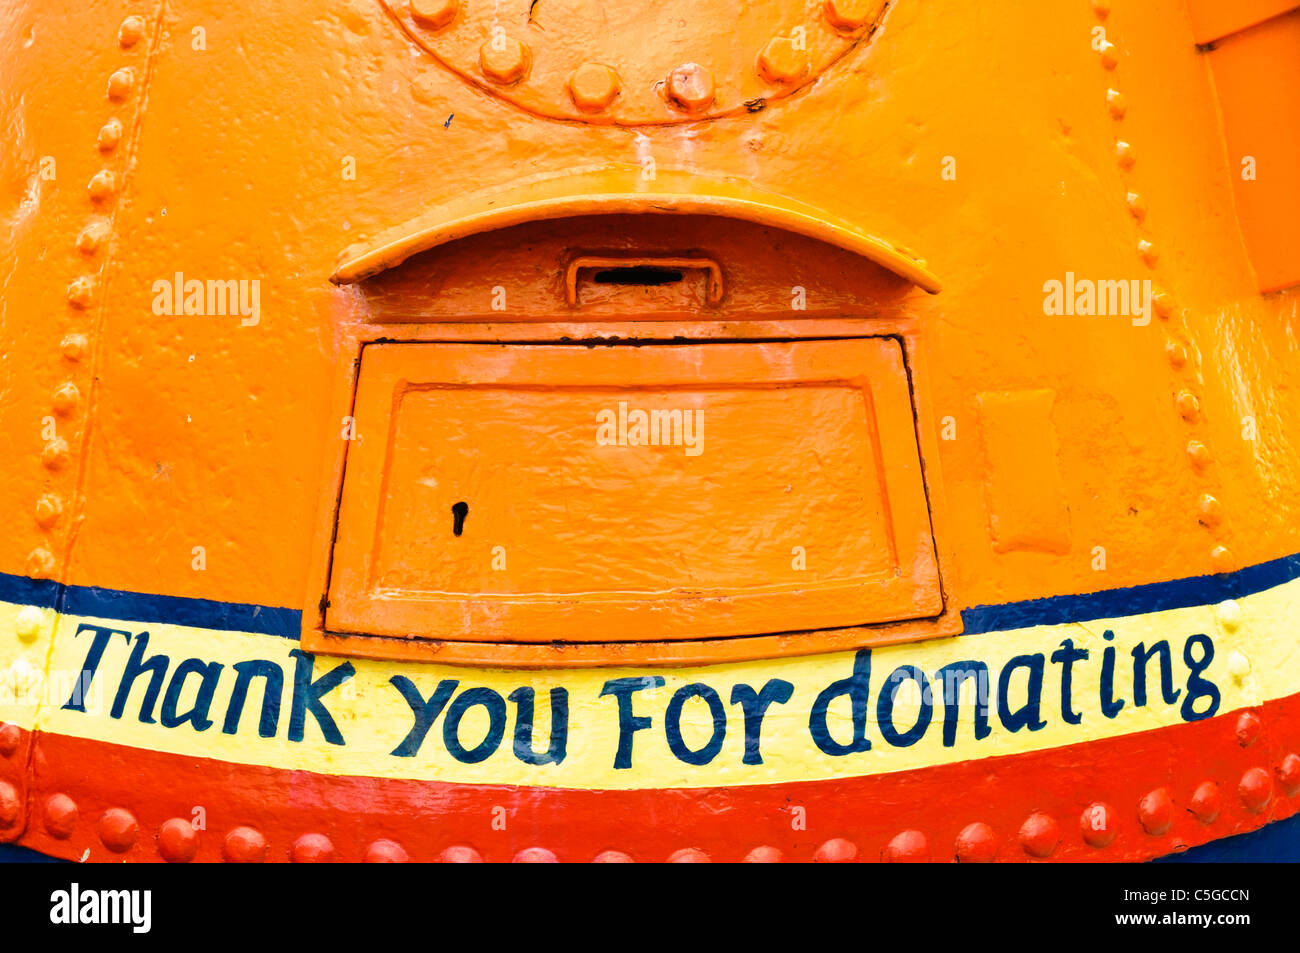 Marine buoy converted into a charity donation box for the RNLI with phrase 'Thank you for donating' - Stock Image